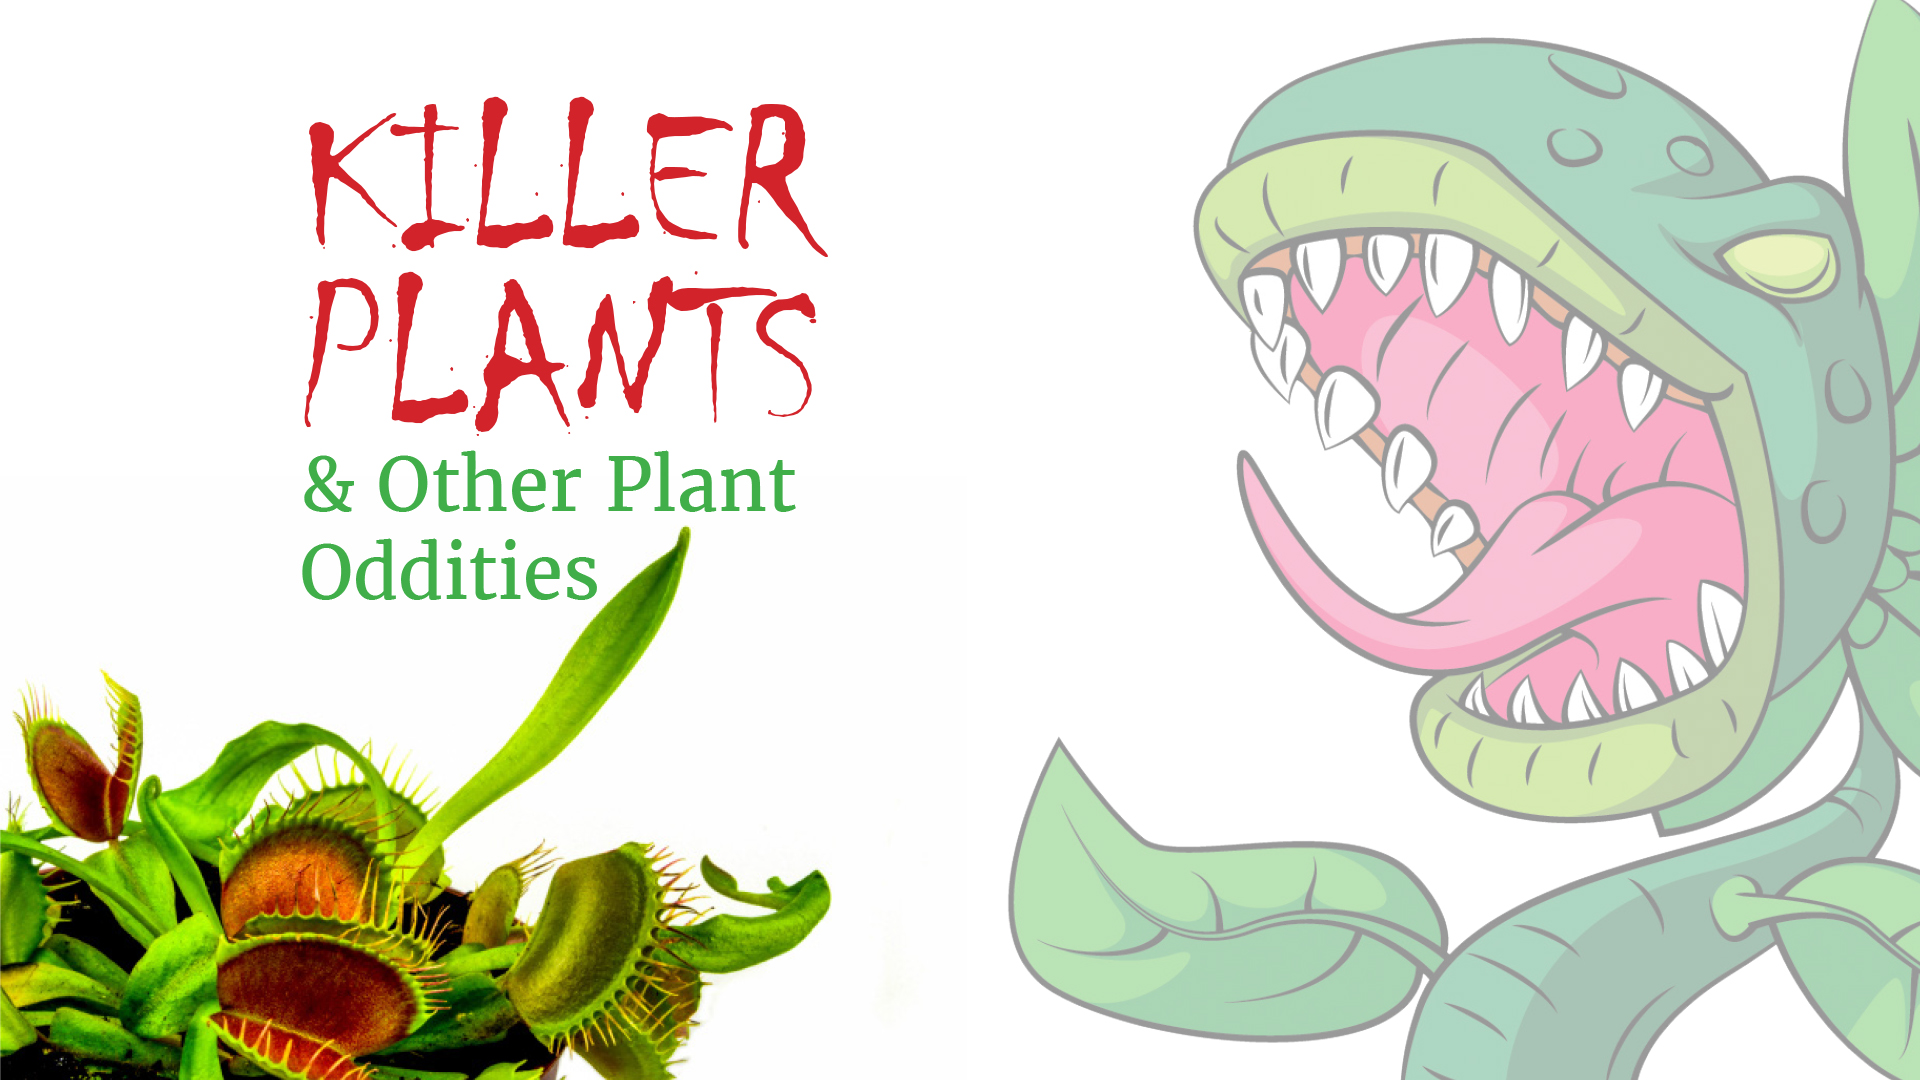 Killer Plants & Other Plant Oddities